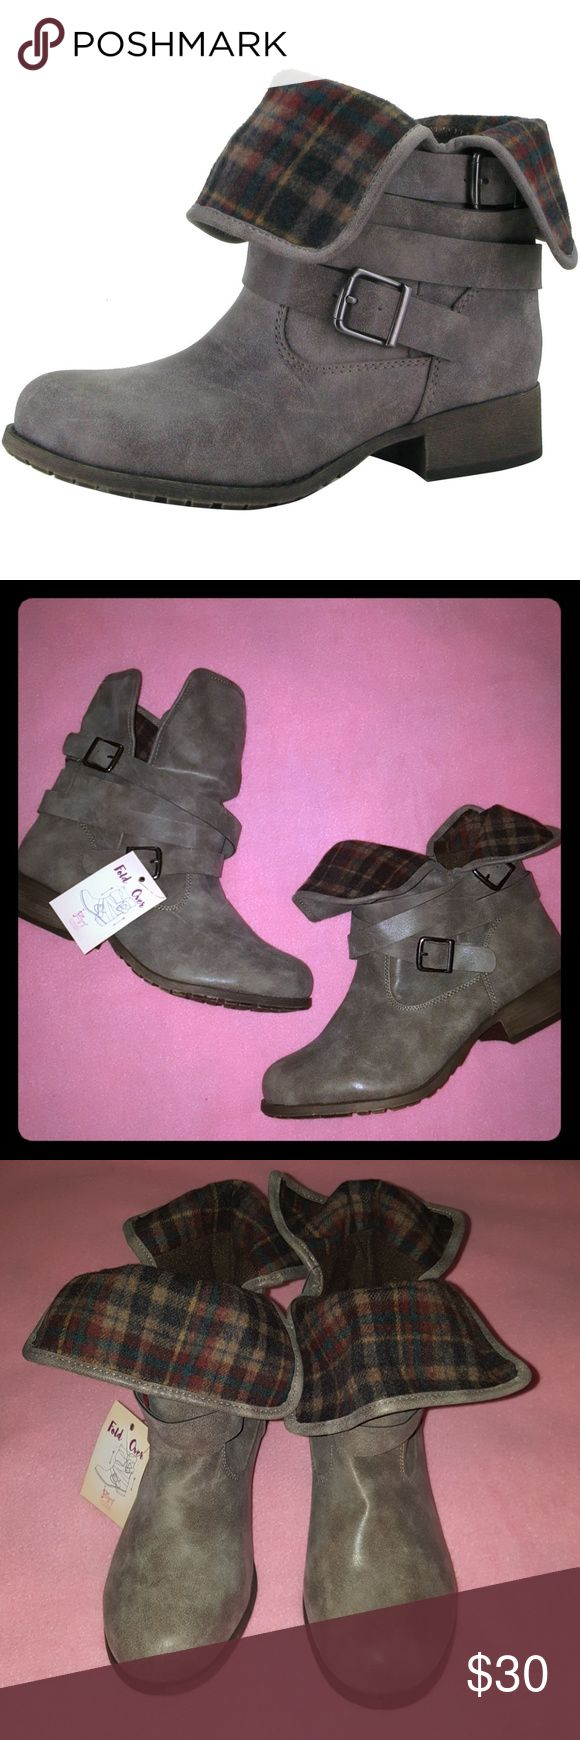 **NWT Jellypop Fold Over Boots size 11 Brown** NWT from a smoke and pet free home. No box. Will ship within 2 business days. *On vacation from 6/9-6/18. Any items purchased during this time will not ship until 6/19.* Jellypop Shoes Ankle Boots & Booties